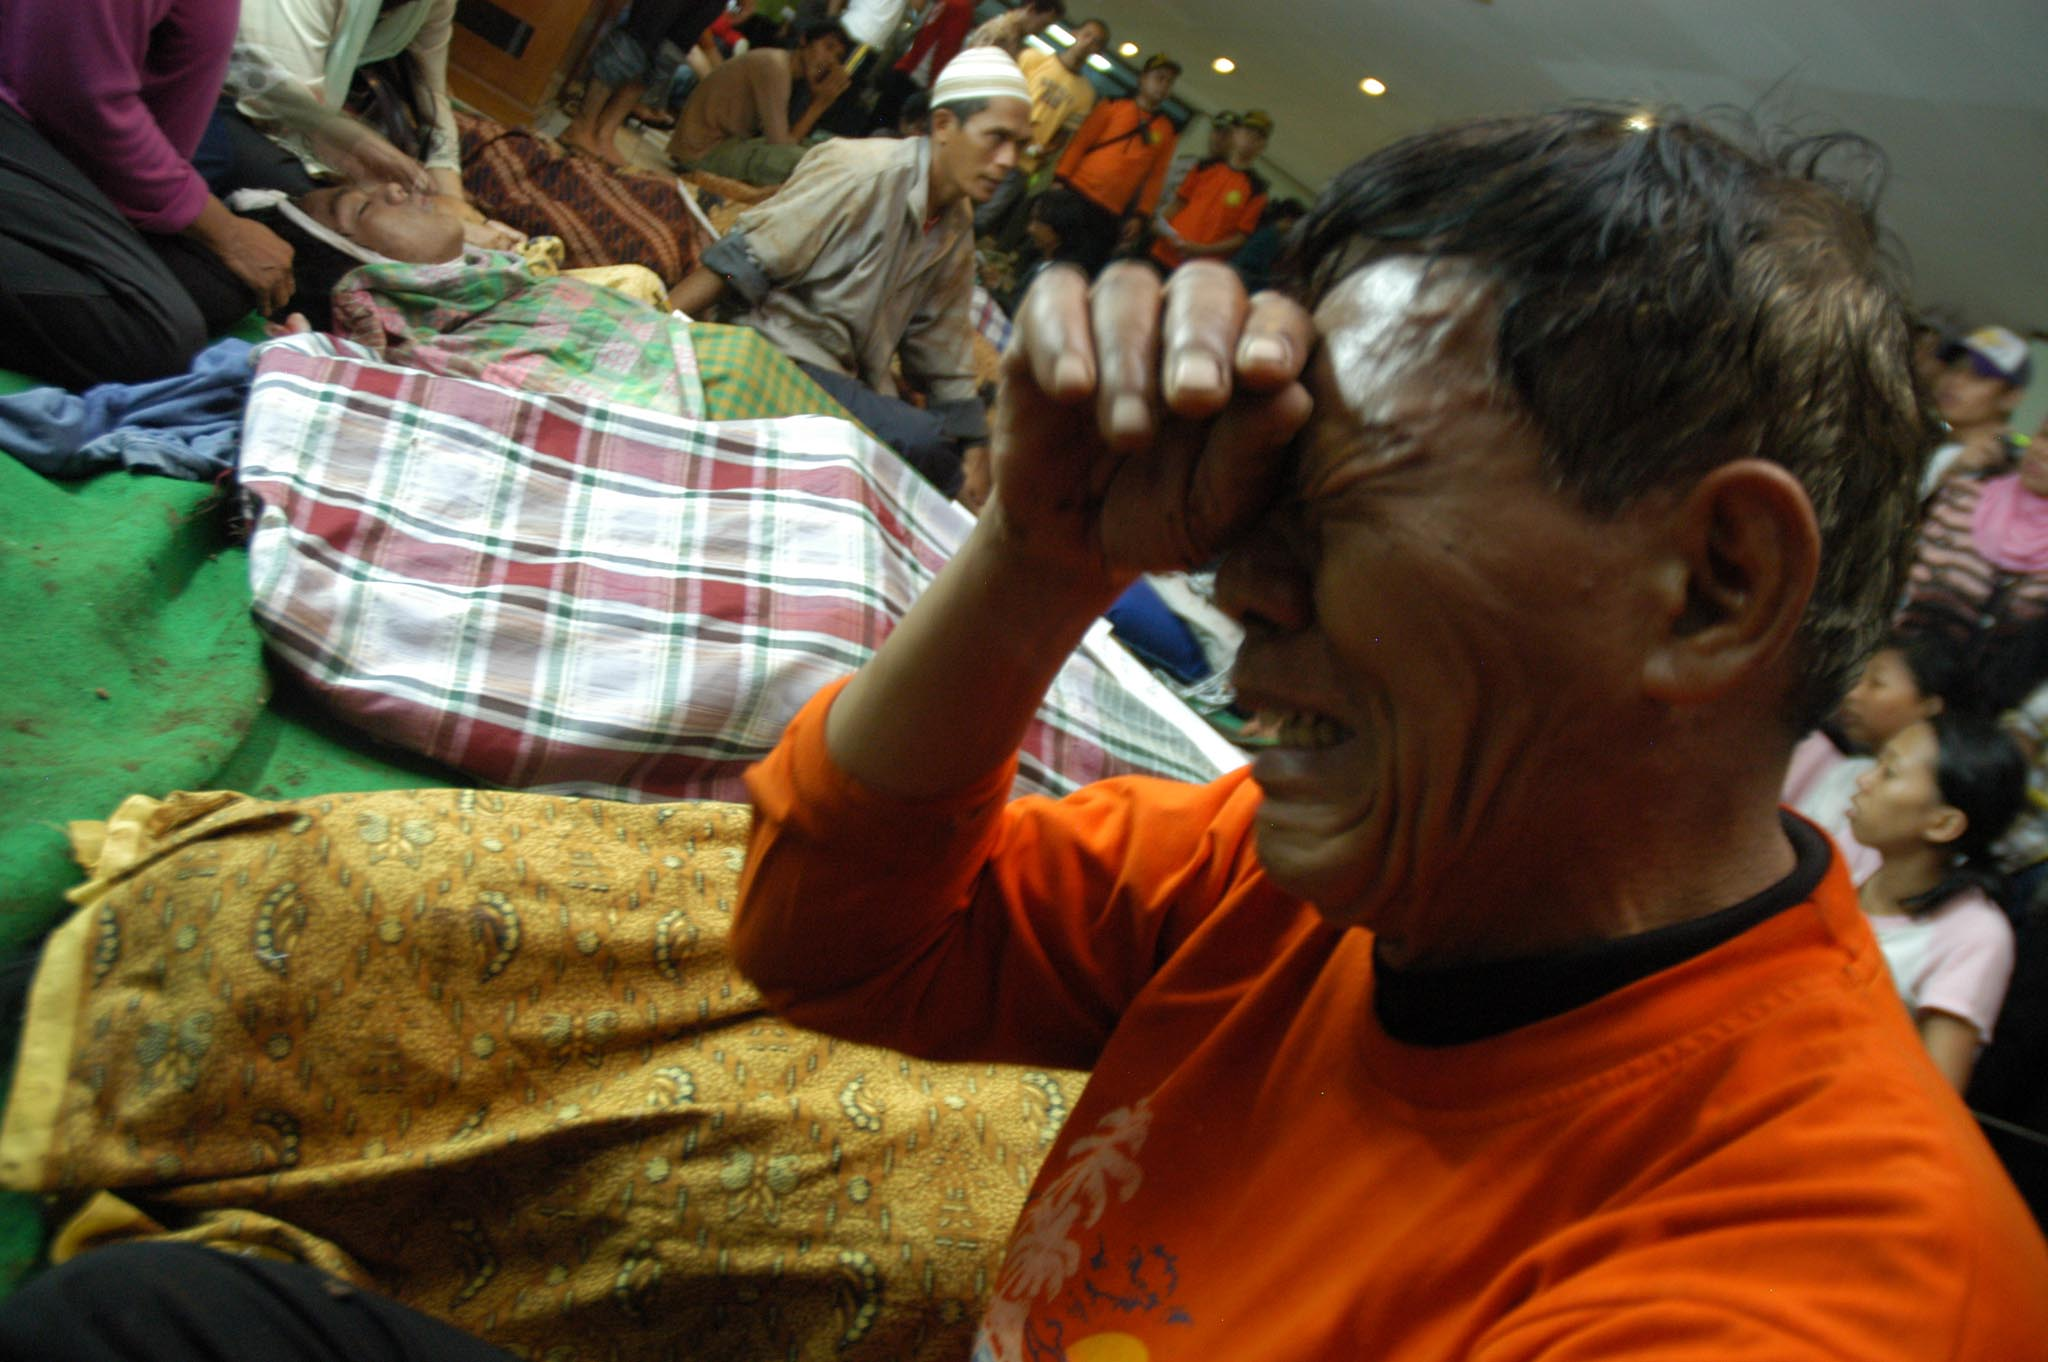 At least 50 people were killed and scores more were injured when a dam burst outside Jakarta on 27 March 2009, impacting at least 2,000 people in the industrial town of Cirendeu in Tangerang, Baten Province. At least 400 homes were affected.